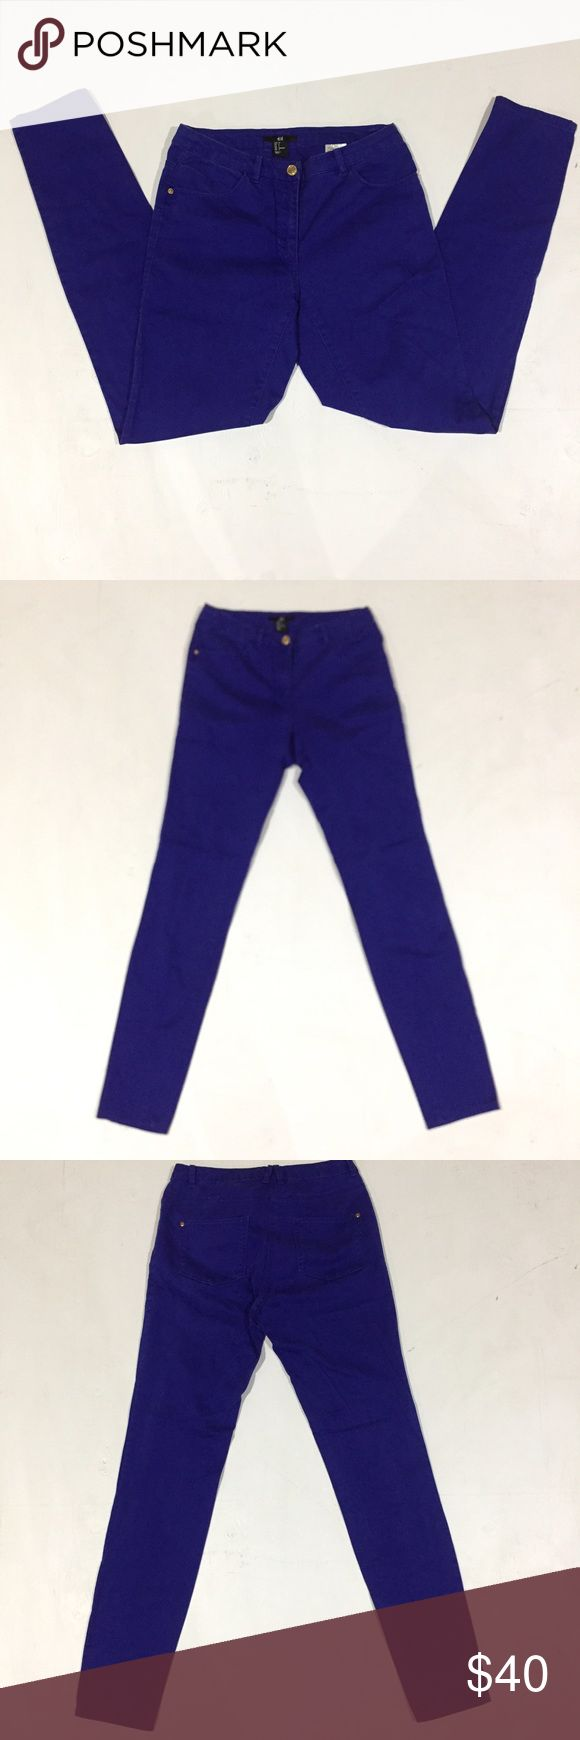 "H&M Blue Purple Skinny Jeans Description: Blueish Purple skinny jeans. Defects: None Condition: Excellent  Waist: 13.5"" flat across Inseam: 28"" Smoke free home with cats and dogs. Washed in All Free & Clear. H&M Jeans Skinny"